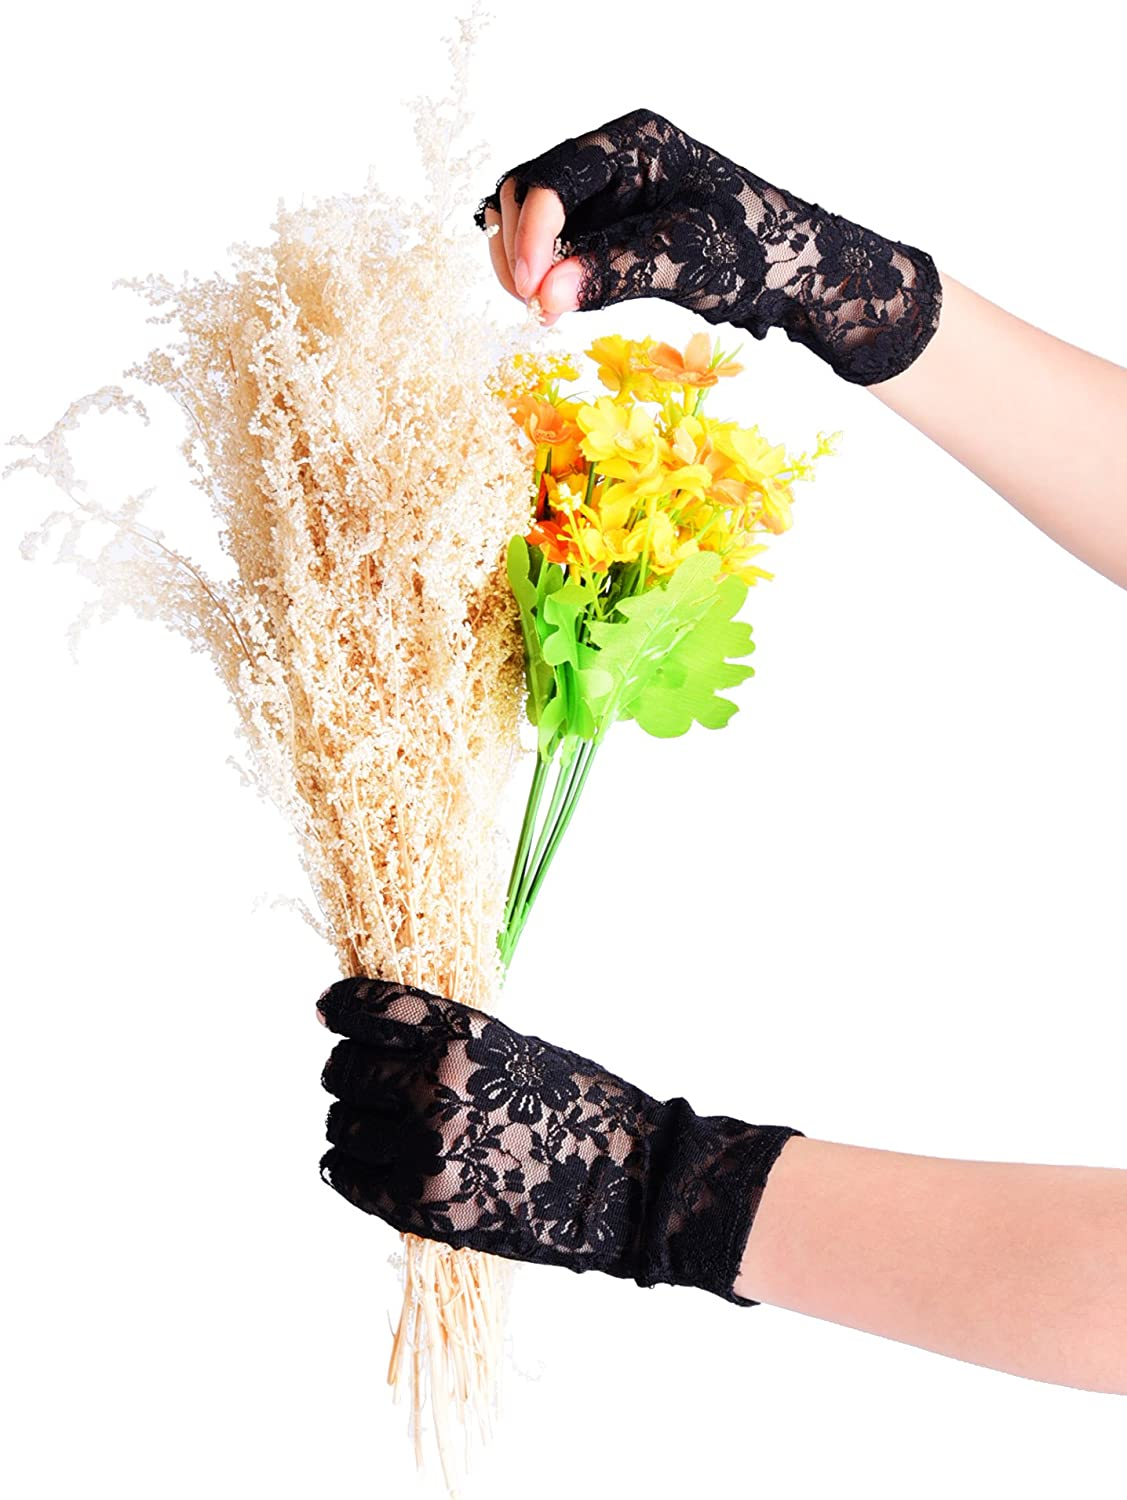 BBTO 3 Pairs 80s Lace Fingerless Gloves Costume Gloves for Christmas Accessory (Black): Clothing